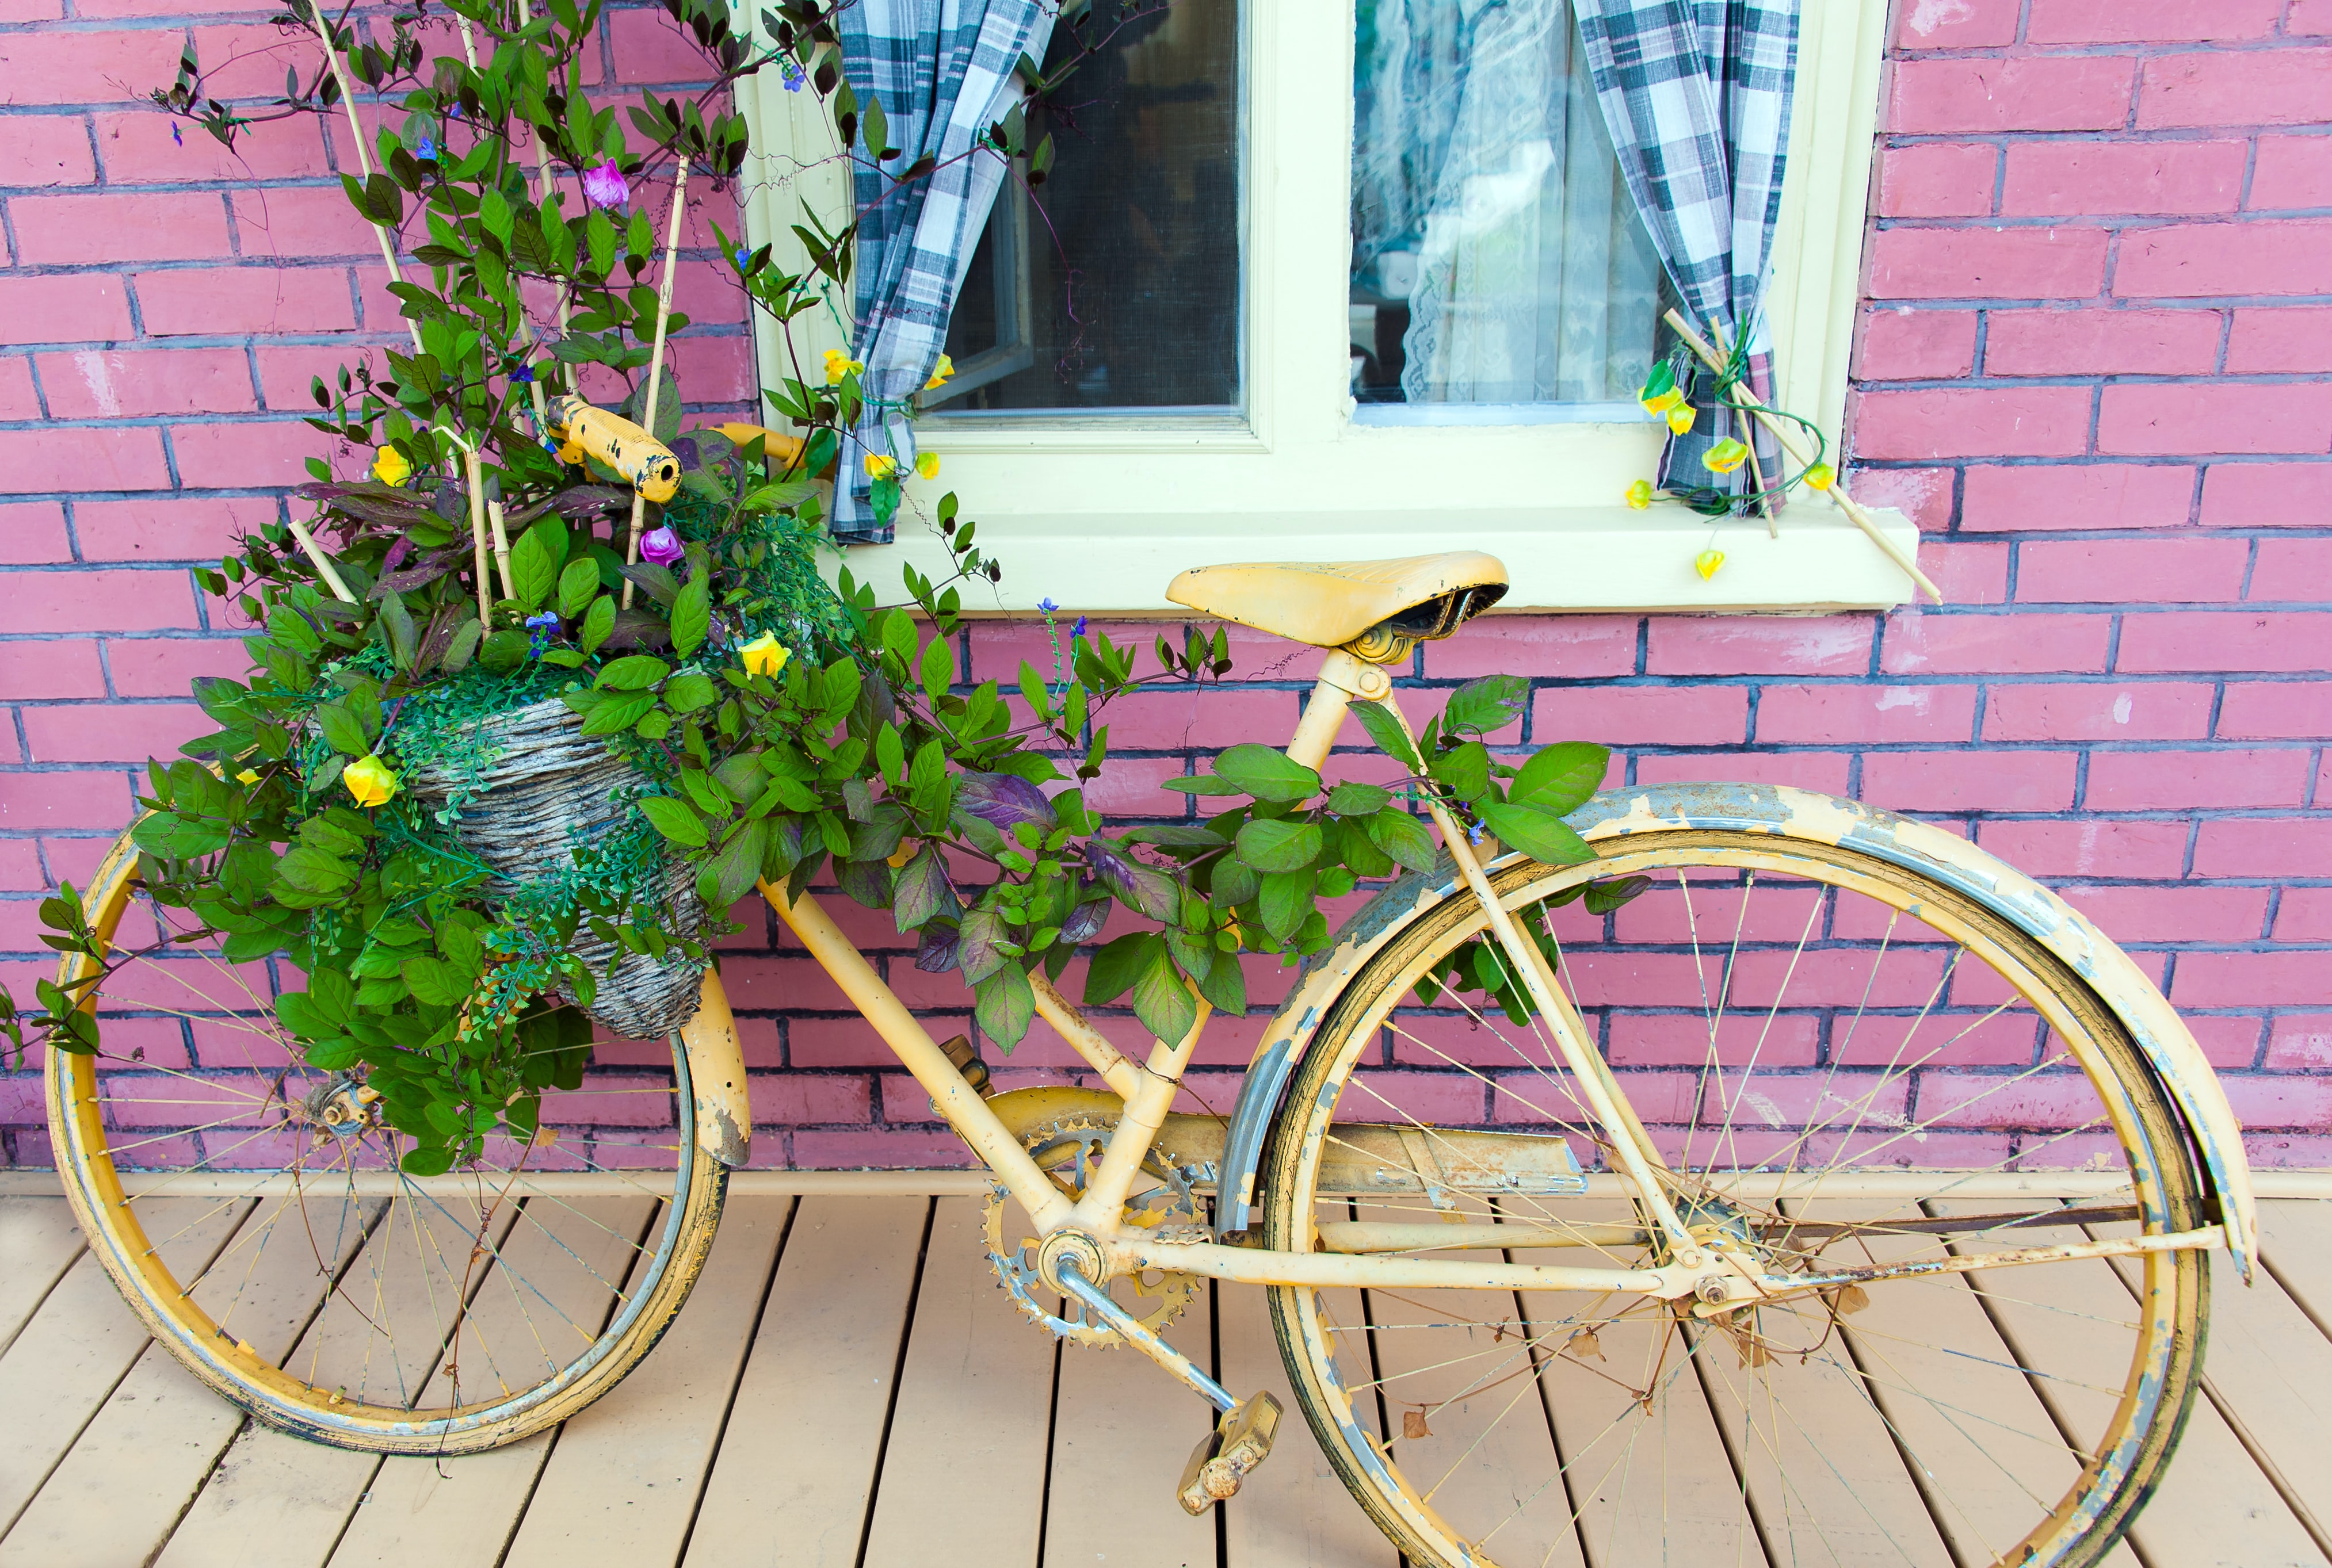 Yellow bicycle with cracked paint aside a pink brick wall, its basket used as a planter